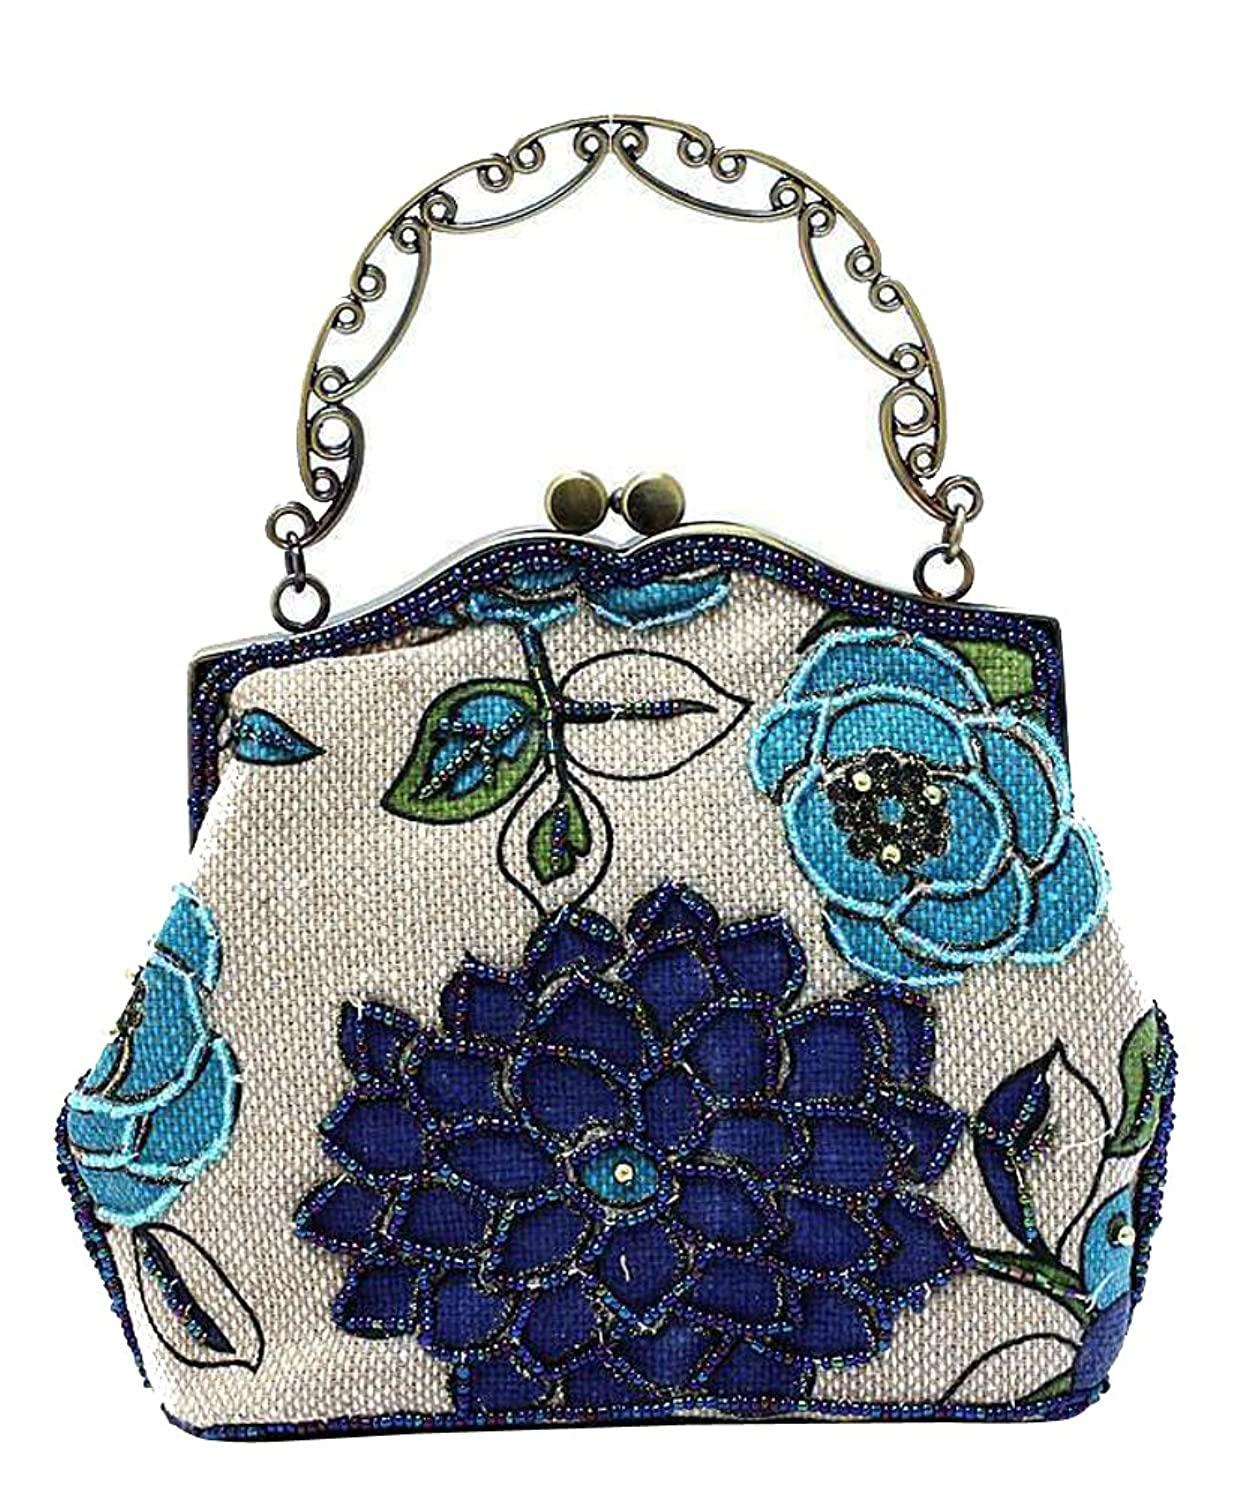 Retro Handbags, Purses, Wallets, Bags ILISHOP Womens Vintage Luxury Printing Beaded Women Handbag Evening Bag $19.99 AT vintagedancer.com